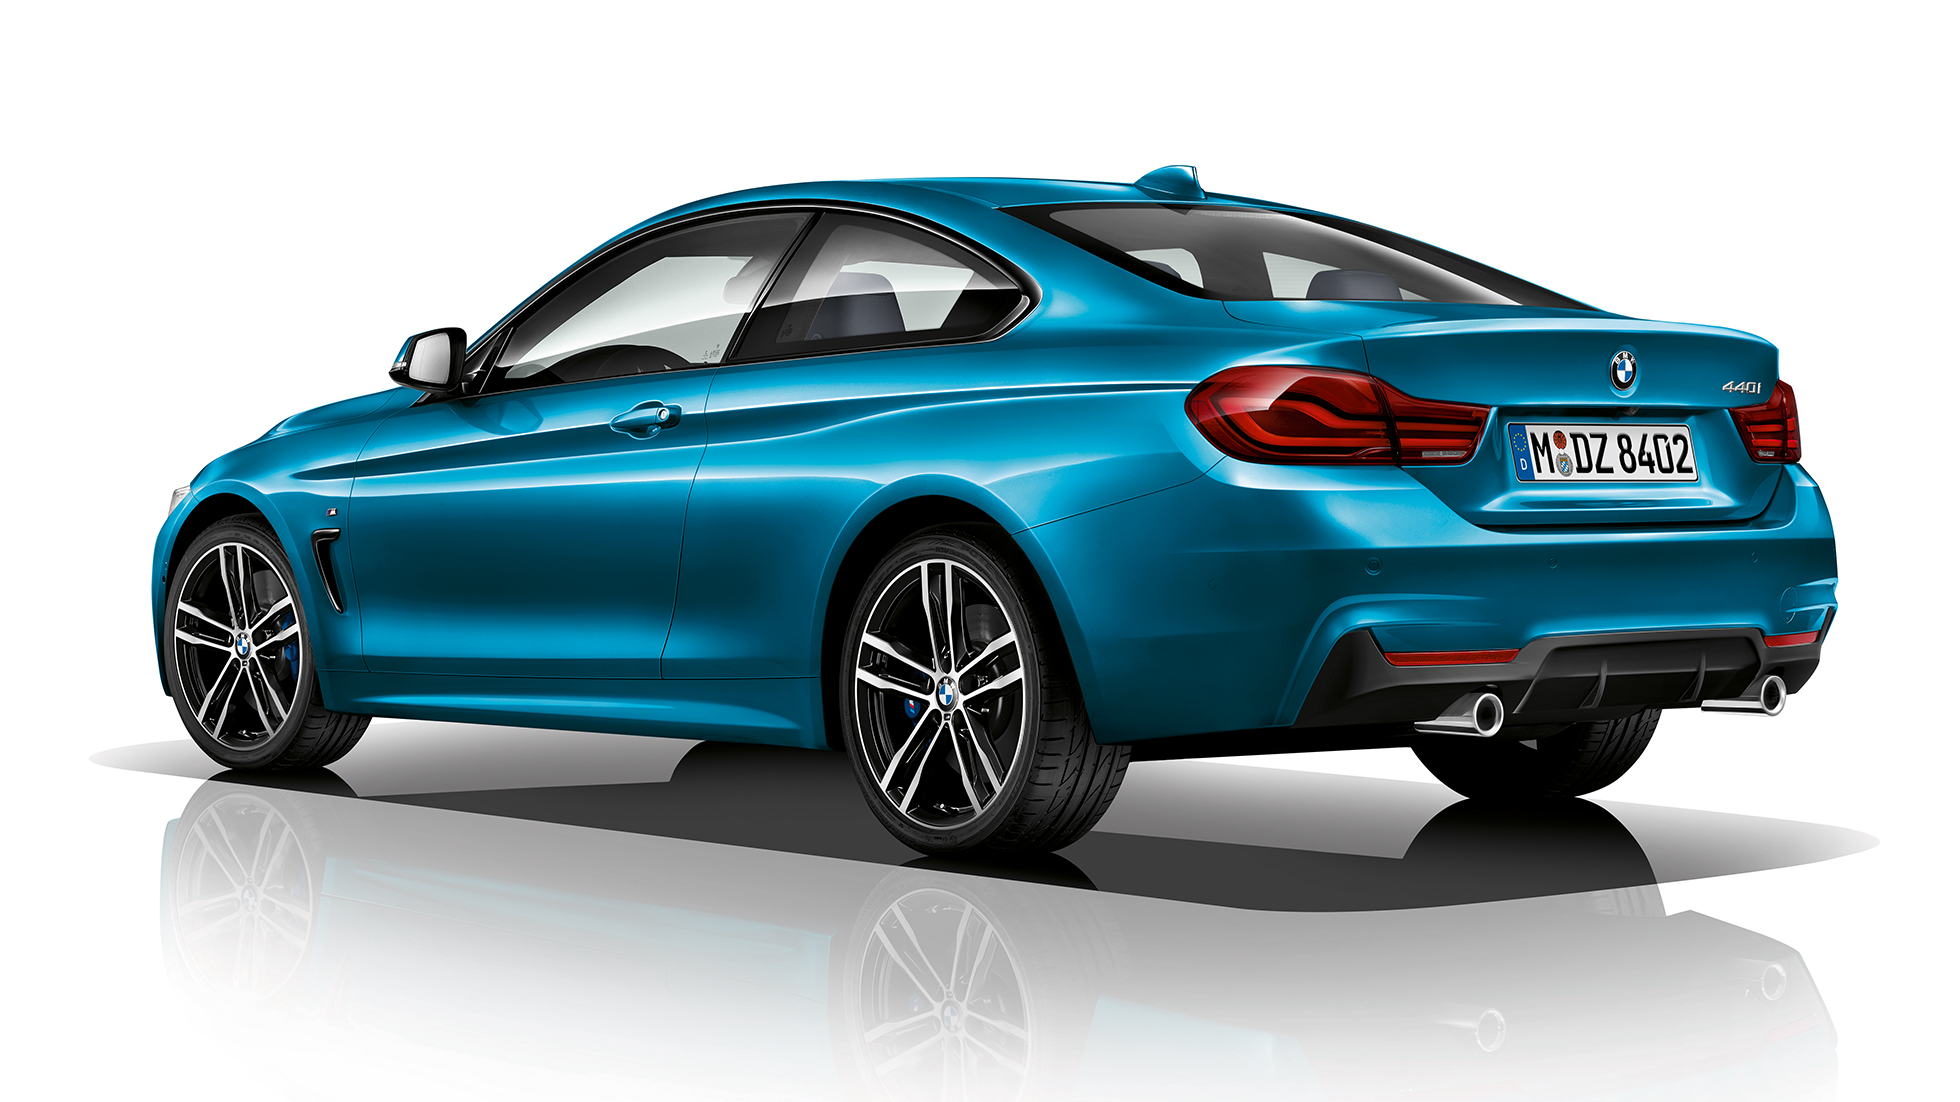 BMW 4 Series Coupé, Model M Sport three-quarter rear shot